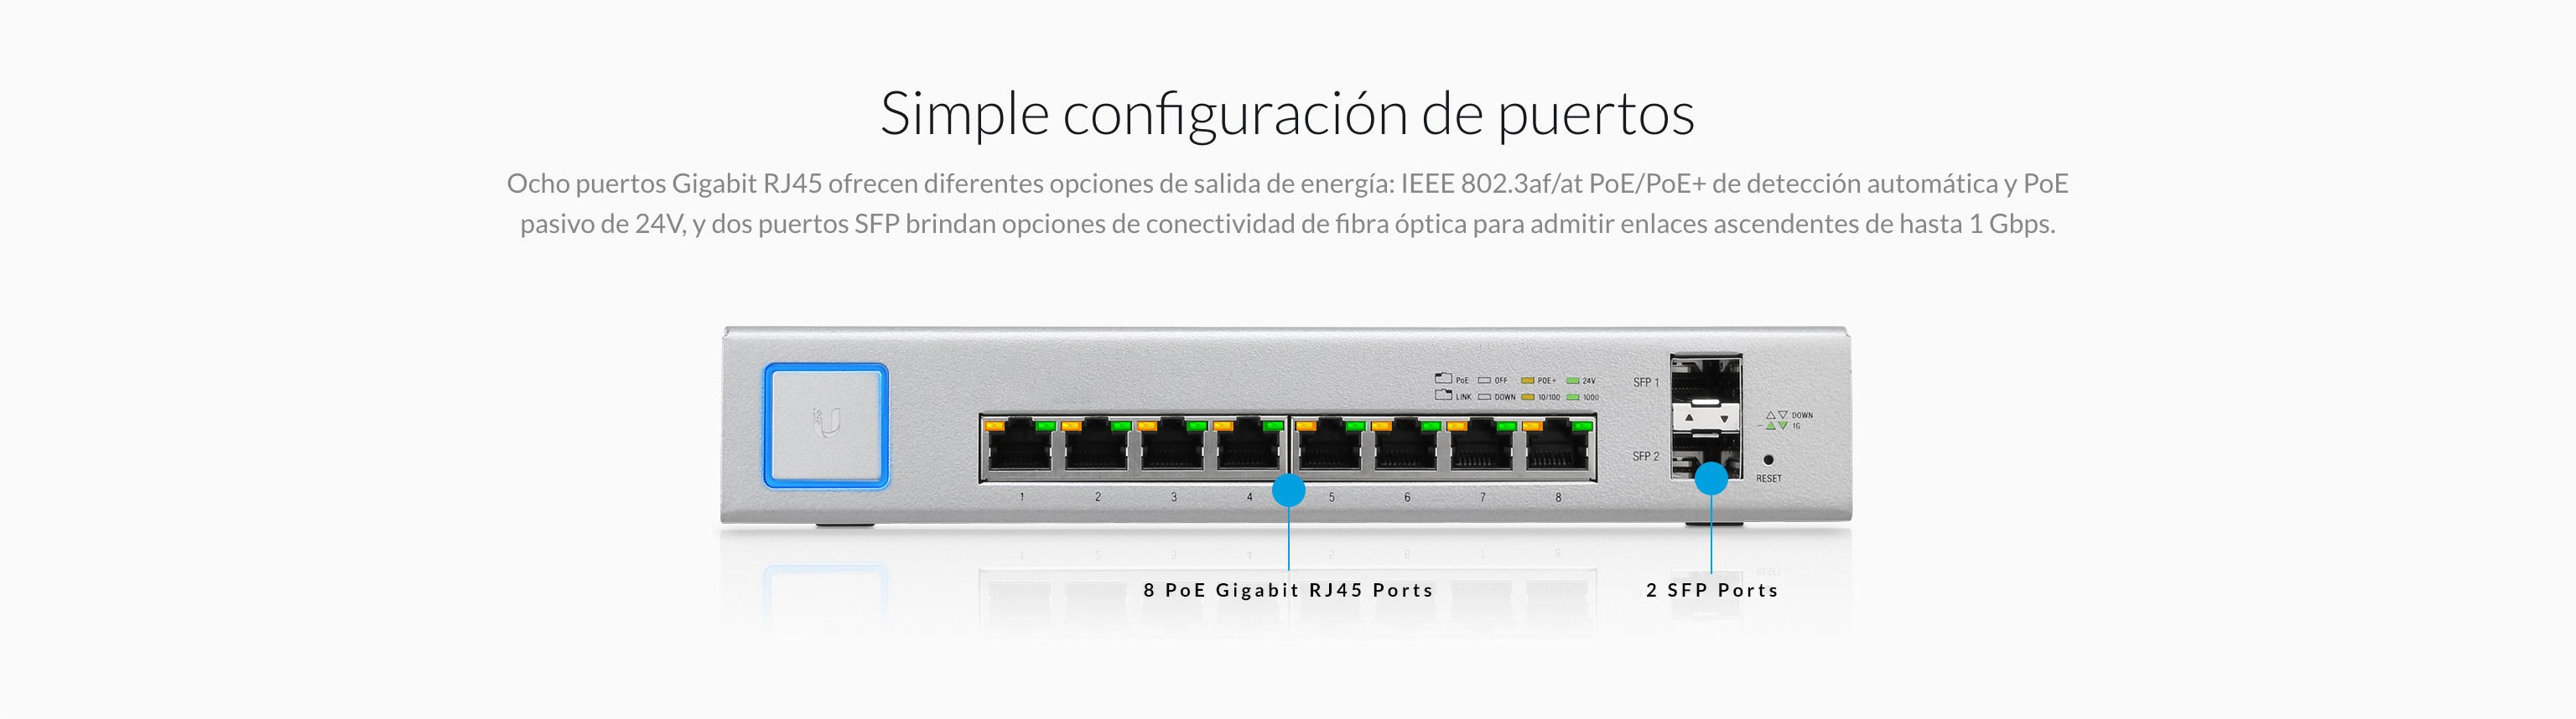 Ubiquiti switch8 150w features